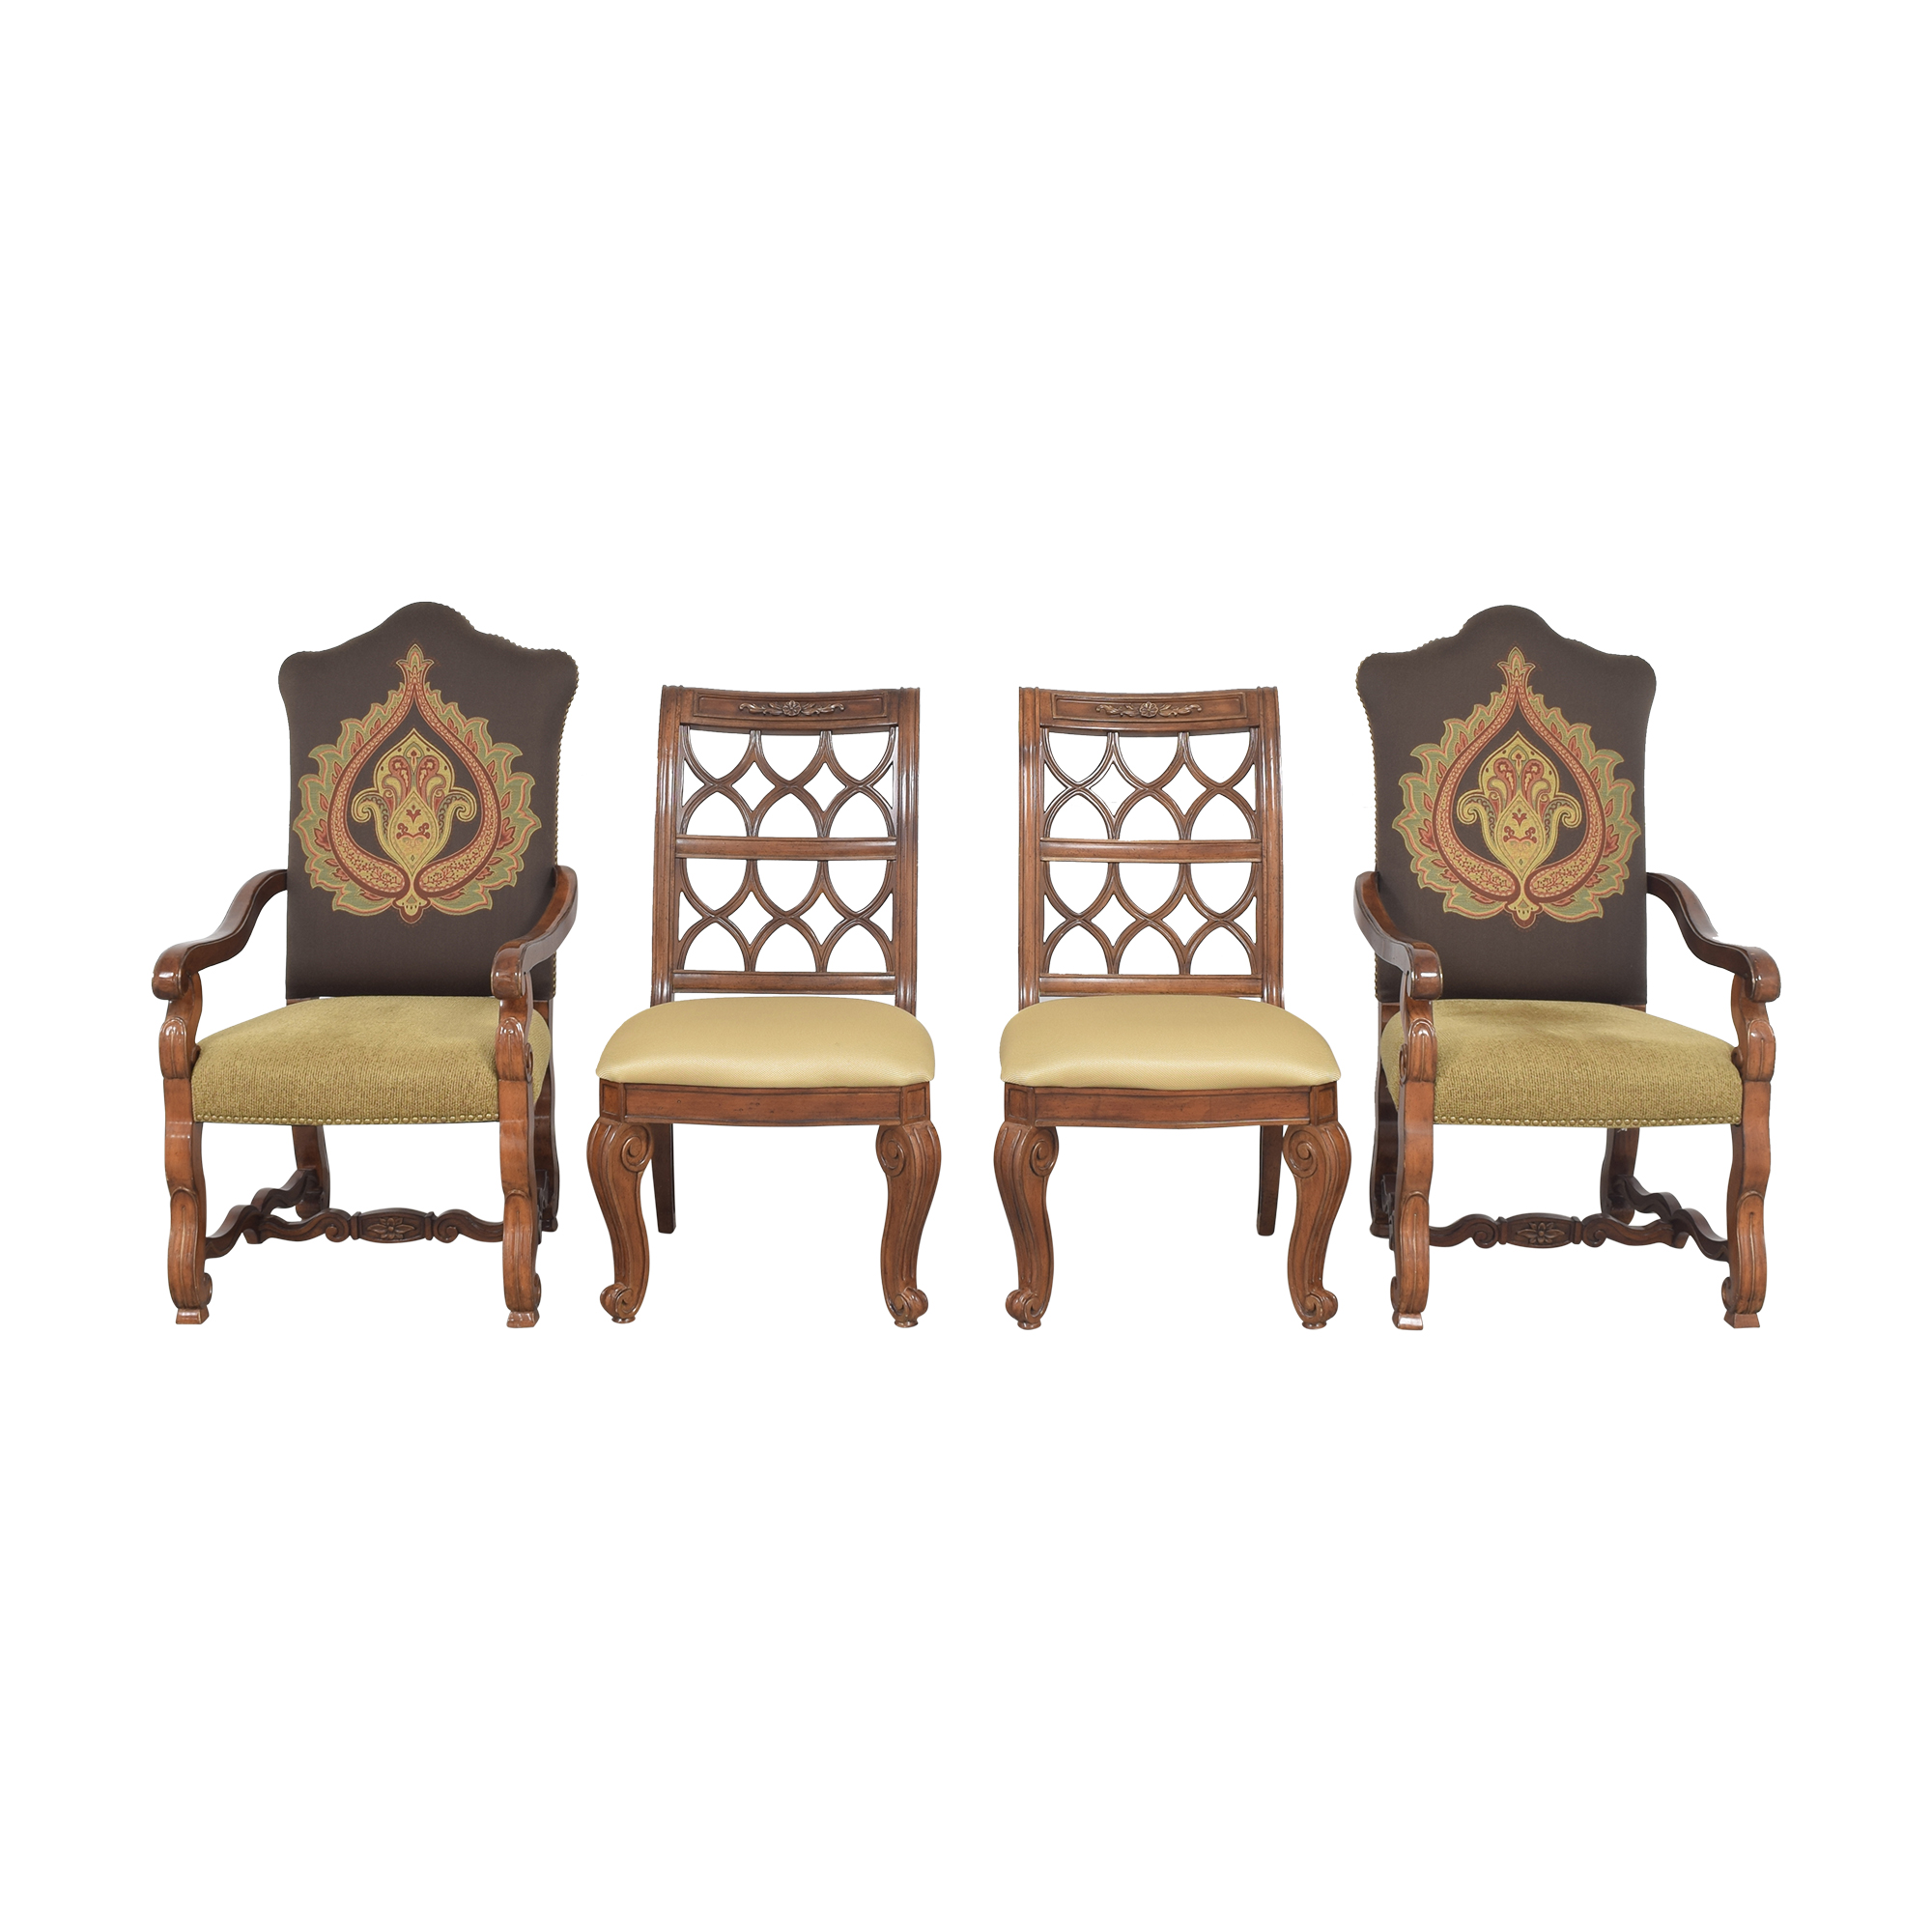 Schnadig Schnadig Upholstered Dining Chairs